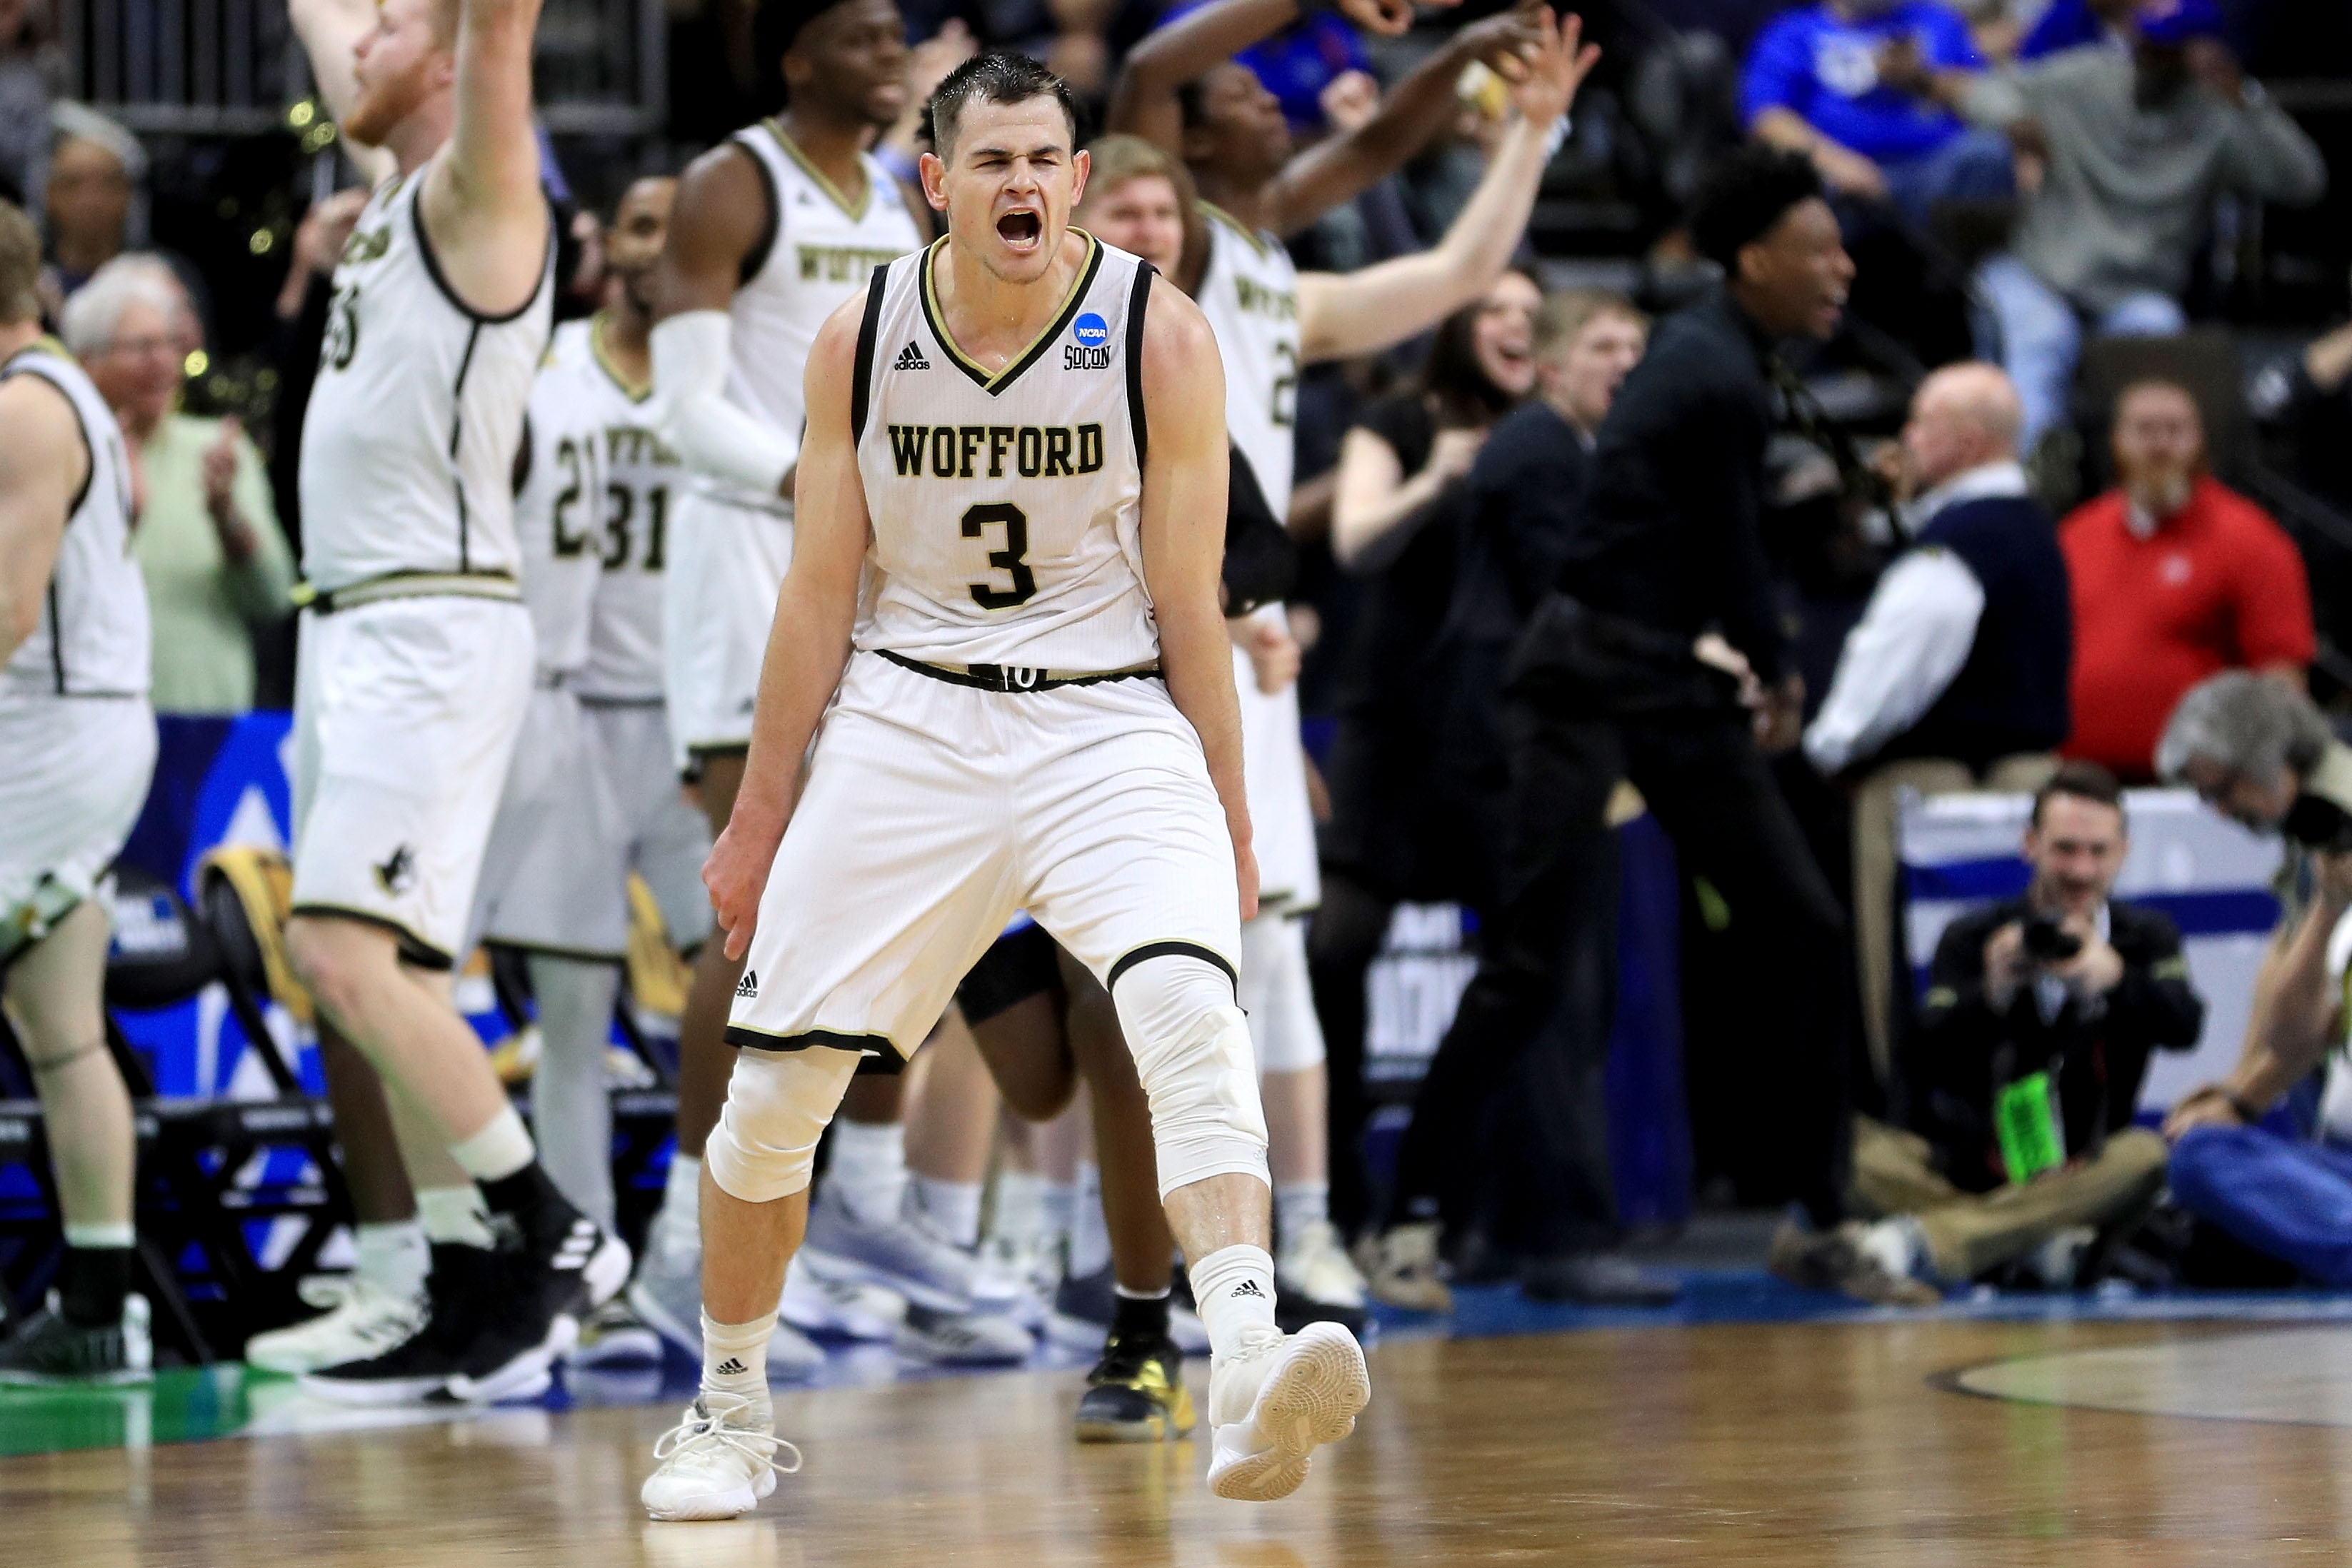 Fletcher Magee went from an unranked recruit to March Madness three-point god